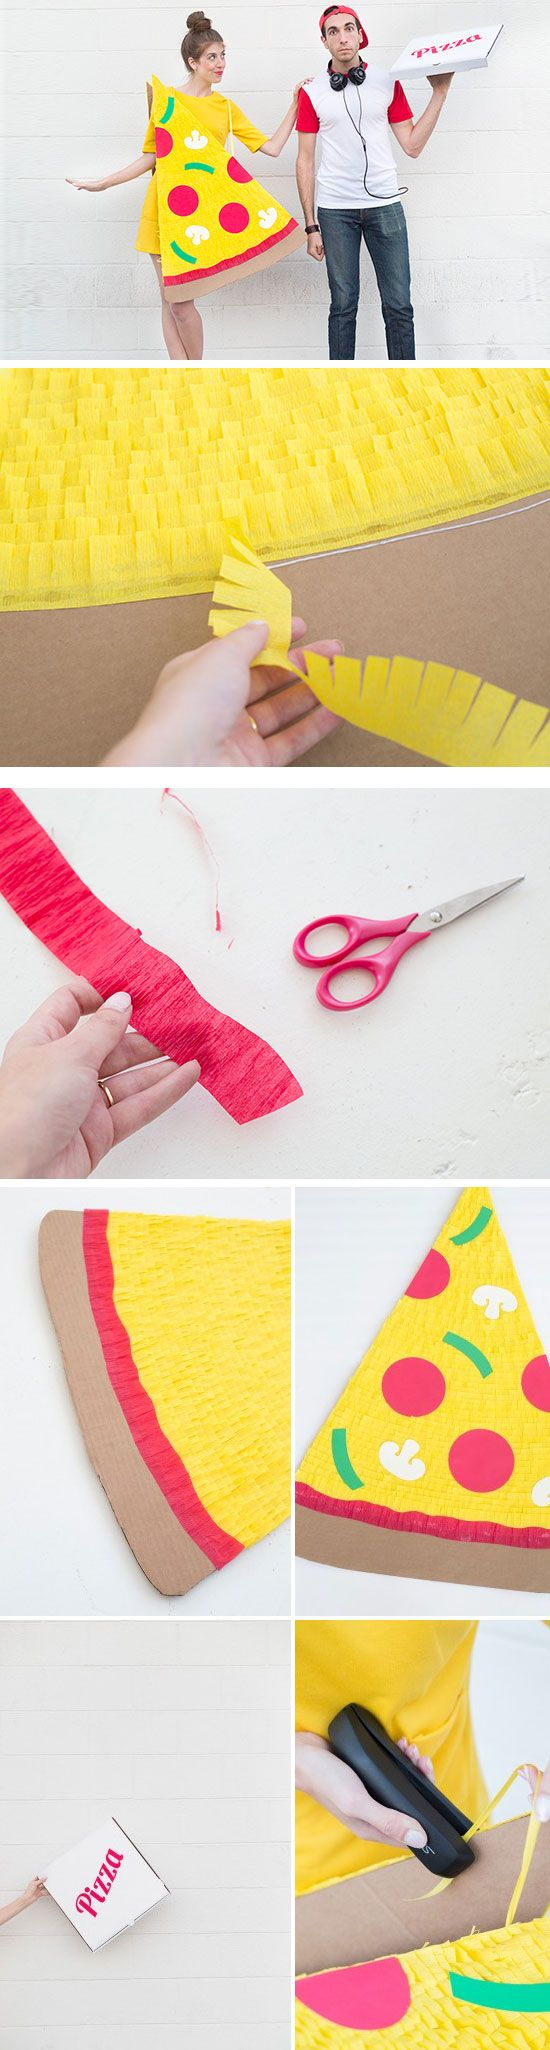 DIY Pizza Slice   Delivery Boy | Click Pic for 26 DIY Halloween Costume Ideas for Couples | Last Minute Halloween Costumes for Groups DIY